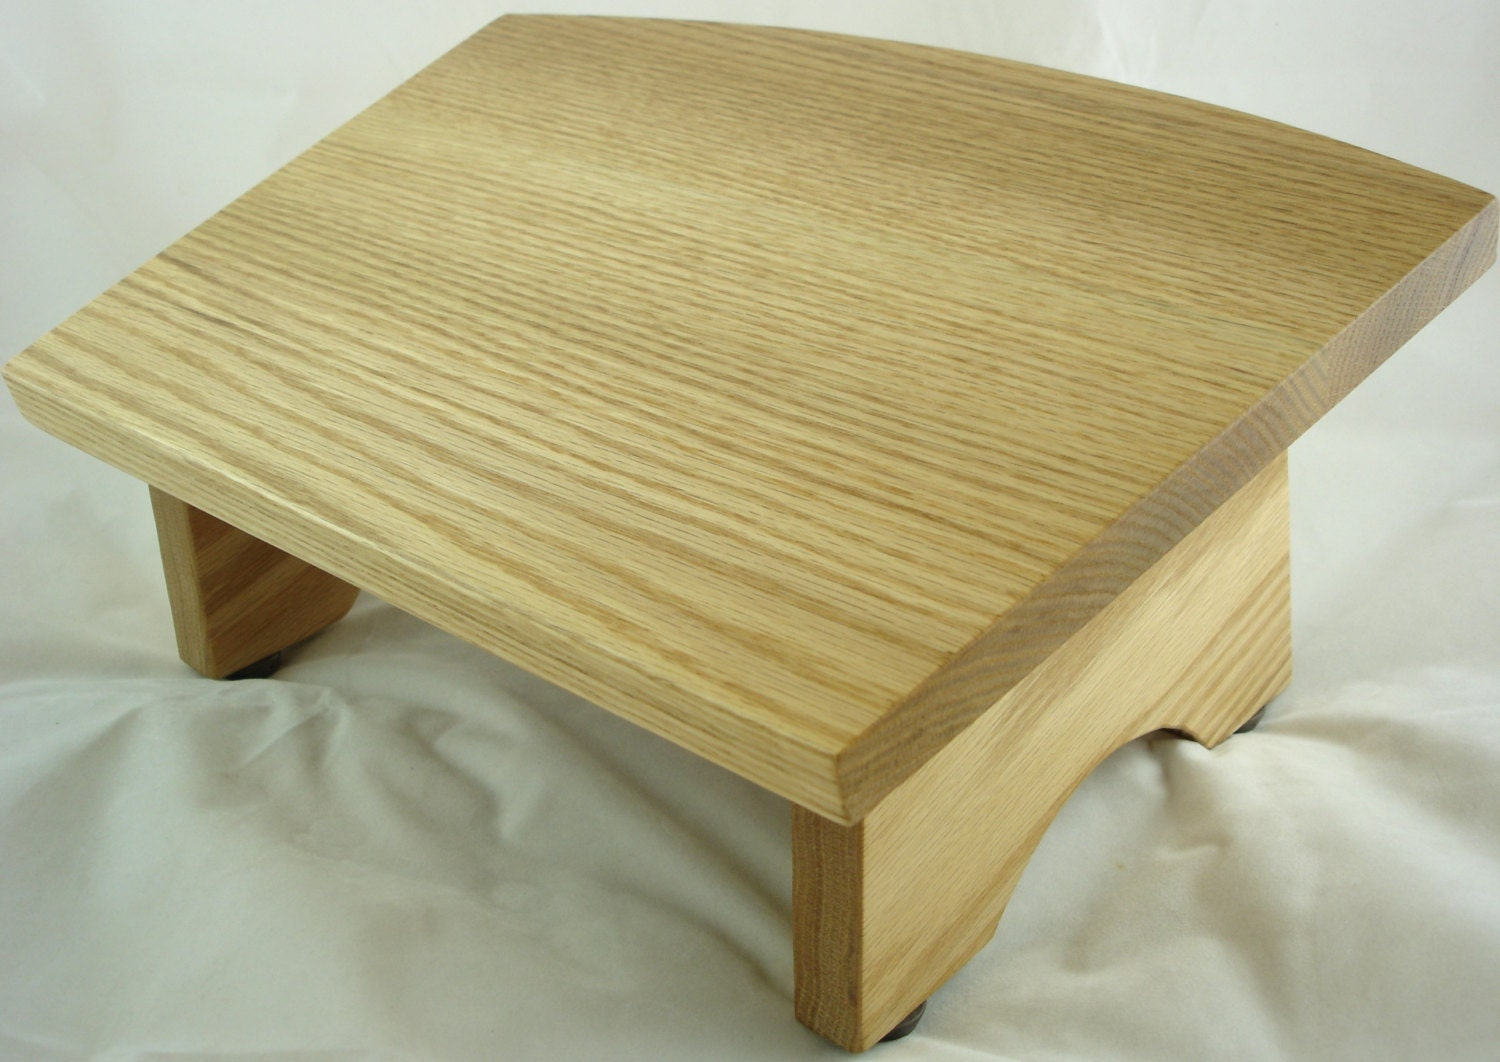 Wooden Nursing Foot Stool Footrest Footstool Wood Ergonomic